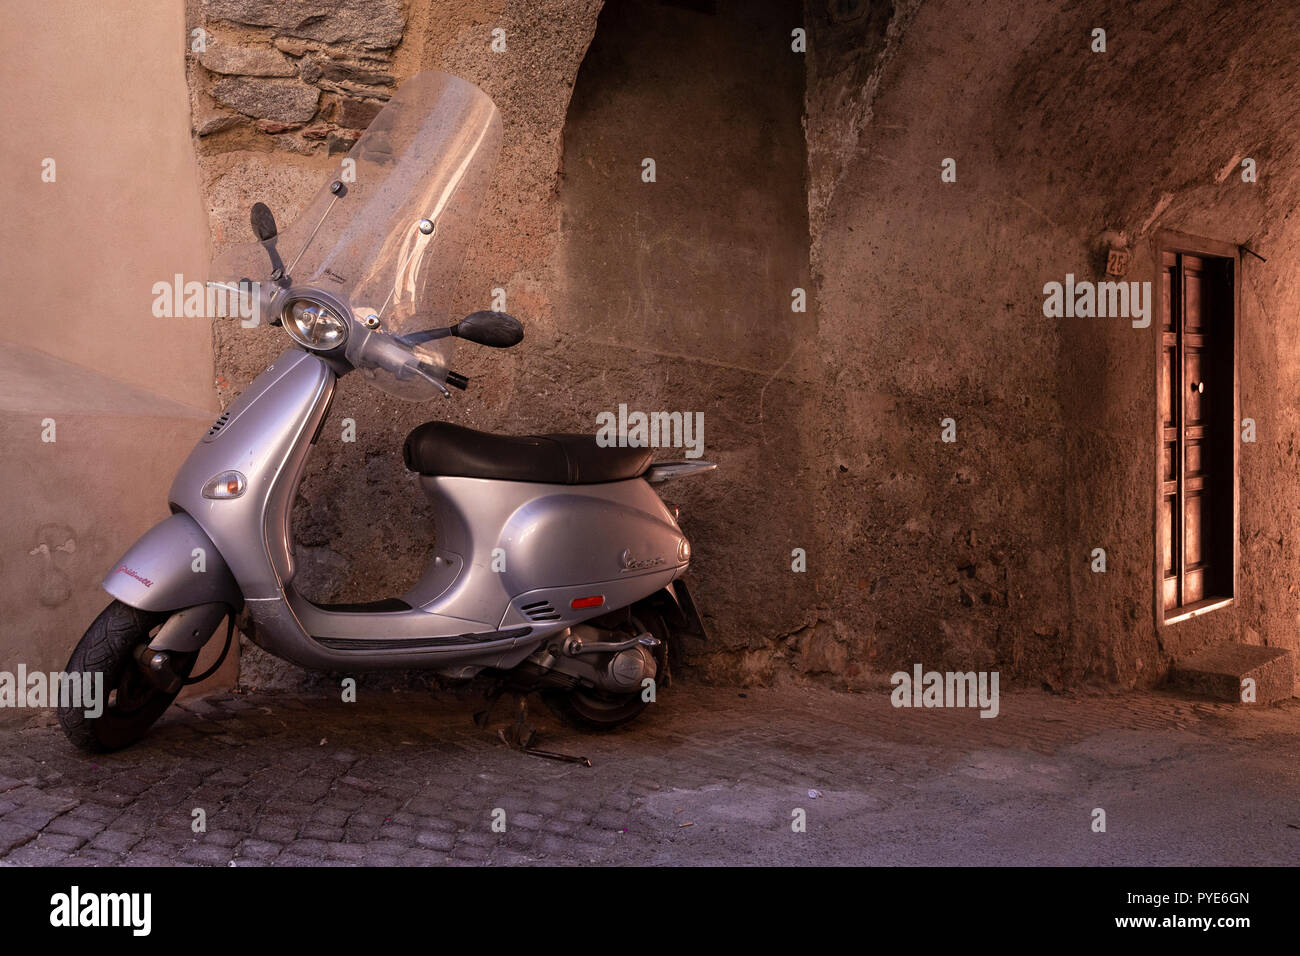 Scooter at Bagolino in northern Italy - Stock Image